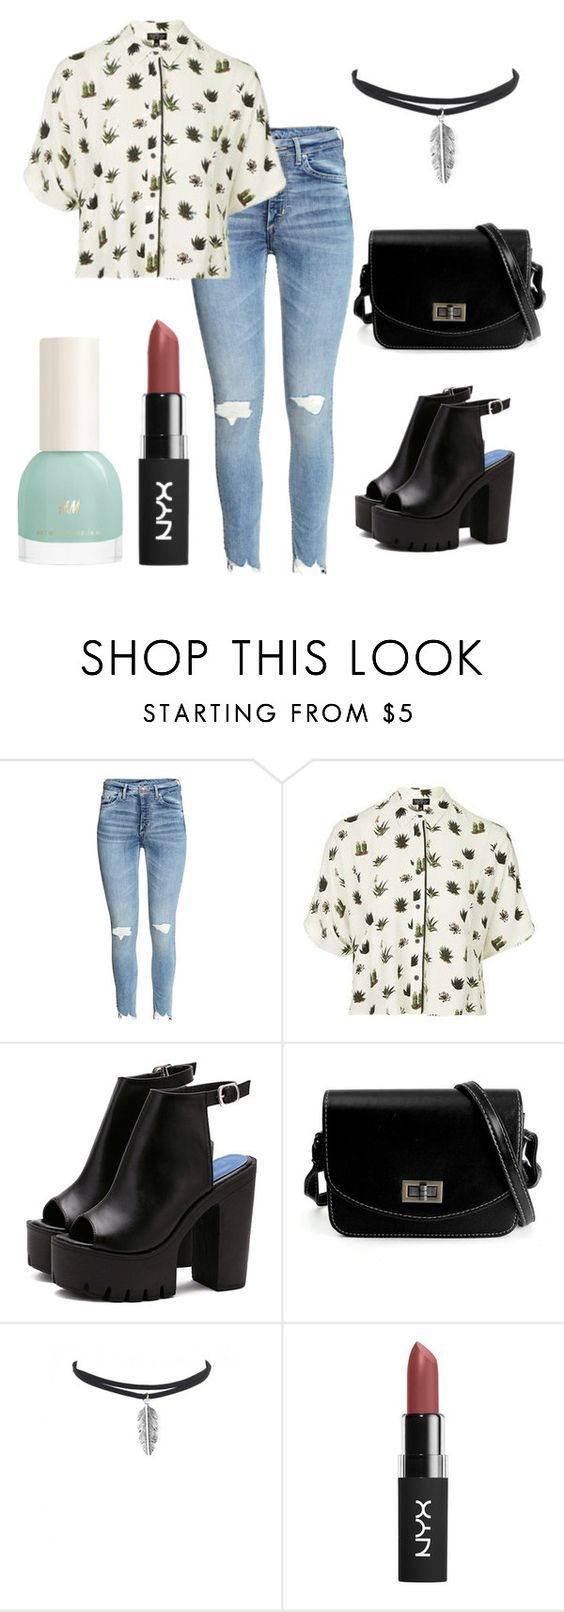 """""""Pyjama Trend #1"""" by eclecticellen ❤ liked on Polyvore featuring Topshop, trend and pyjamas"""